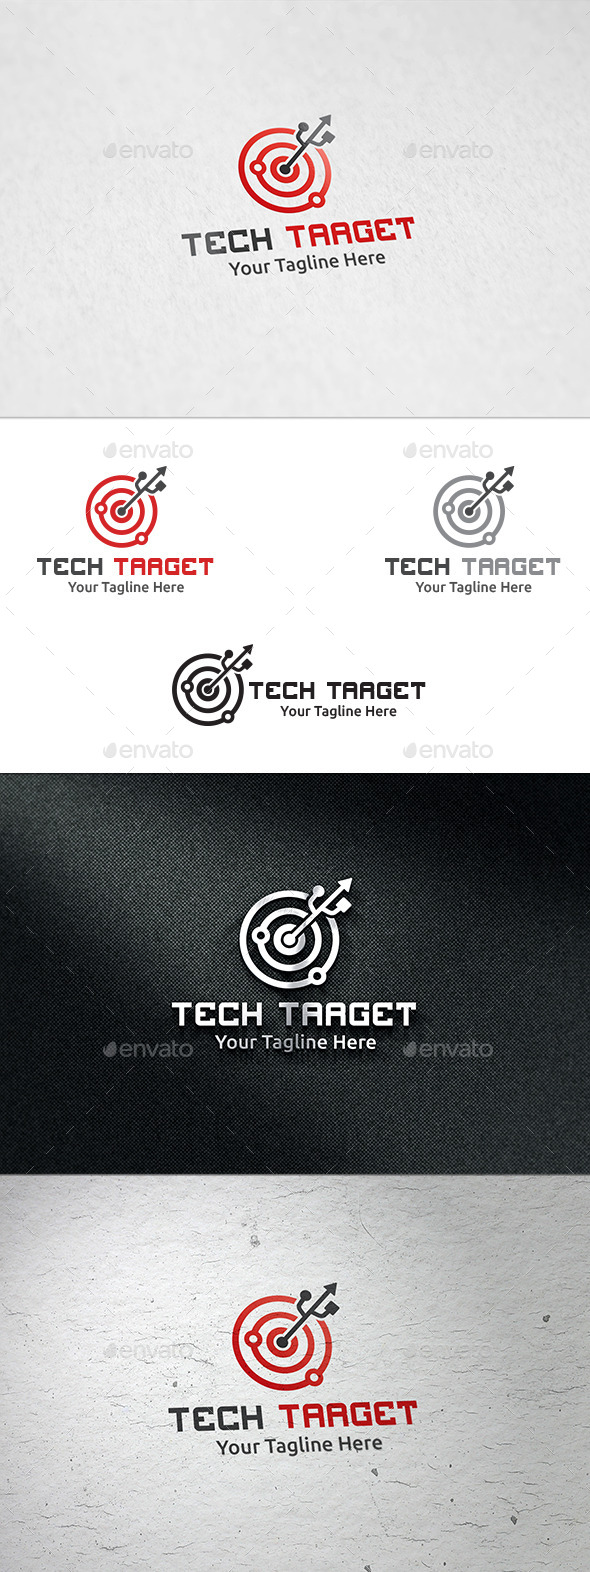 GraphicRiver Tech Target Logo Template 8888293